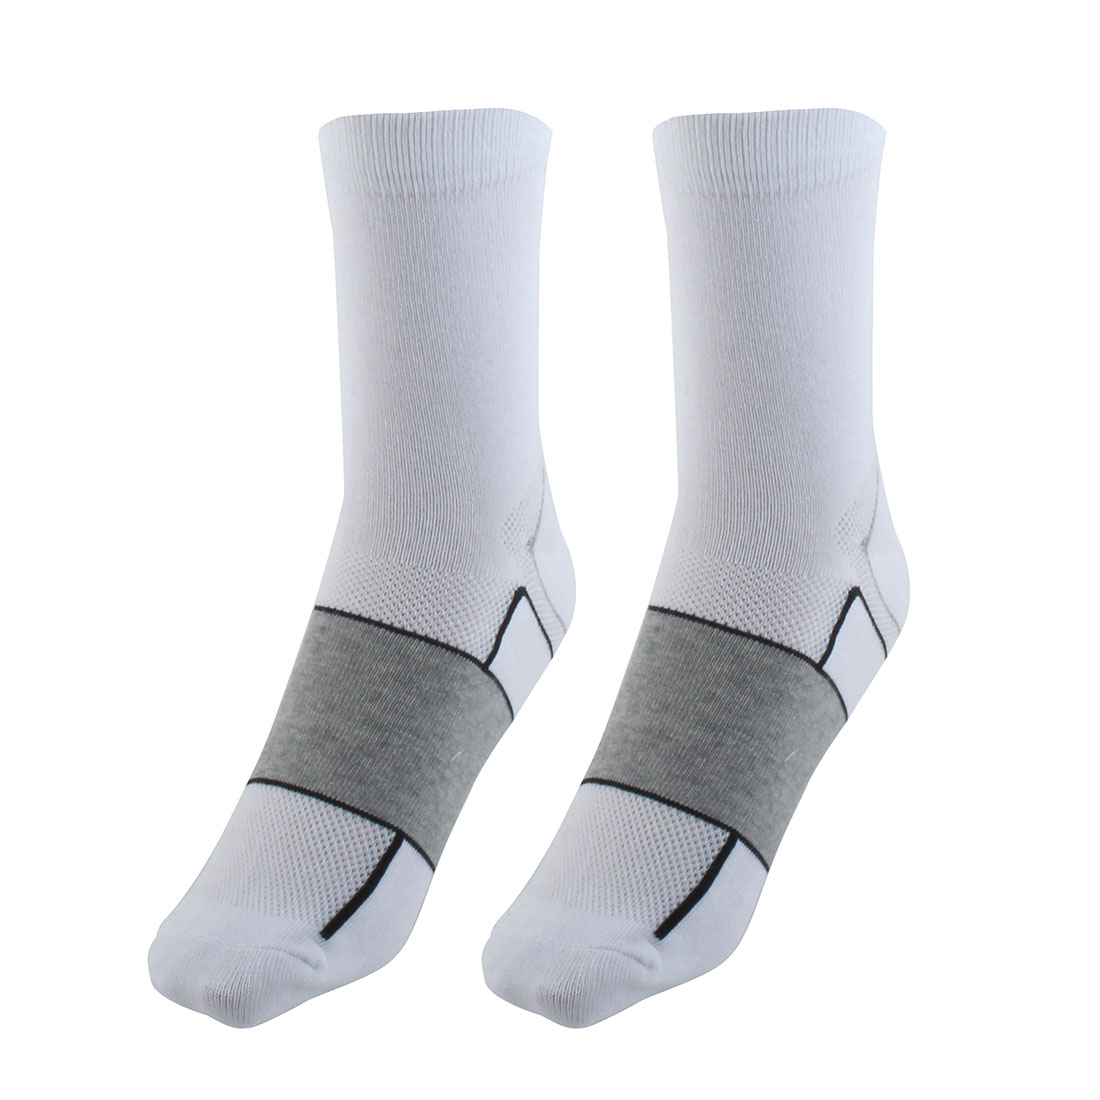 R-BAO Authorized Bicycle Basketball Mountain Bike Cotton Blend Breathable Sports Cycling Socks White Pair